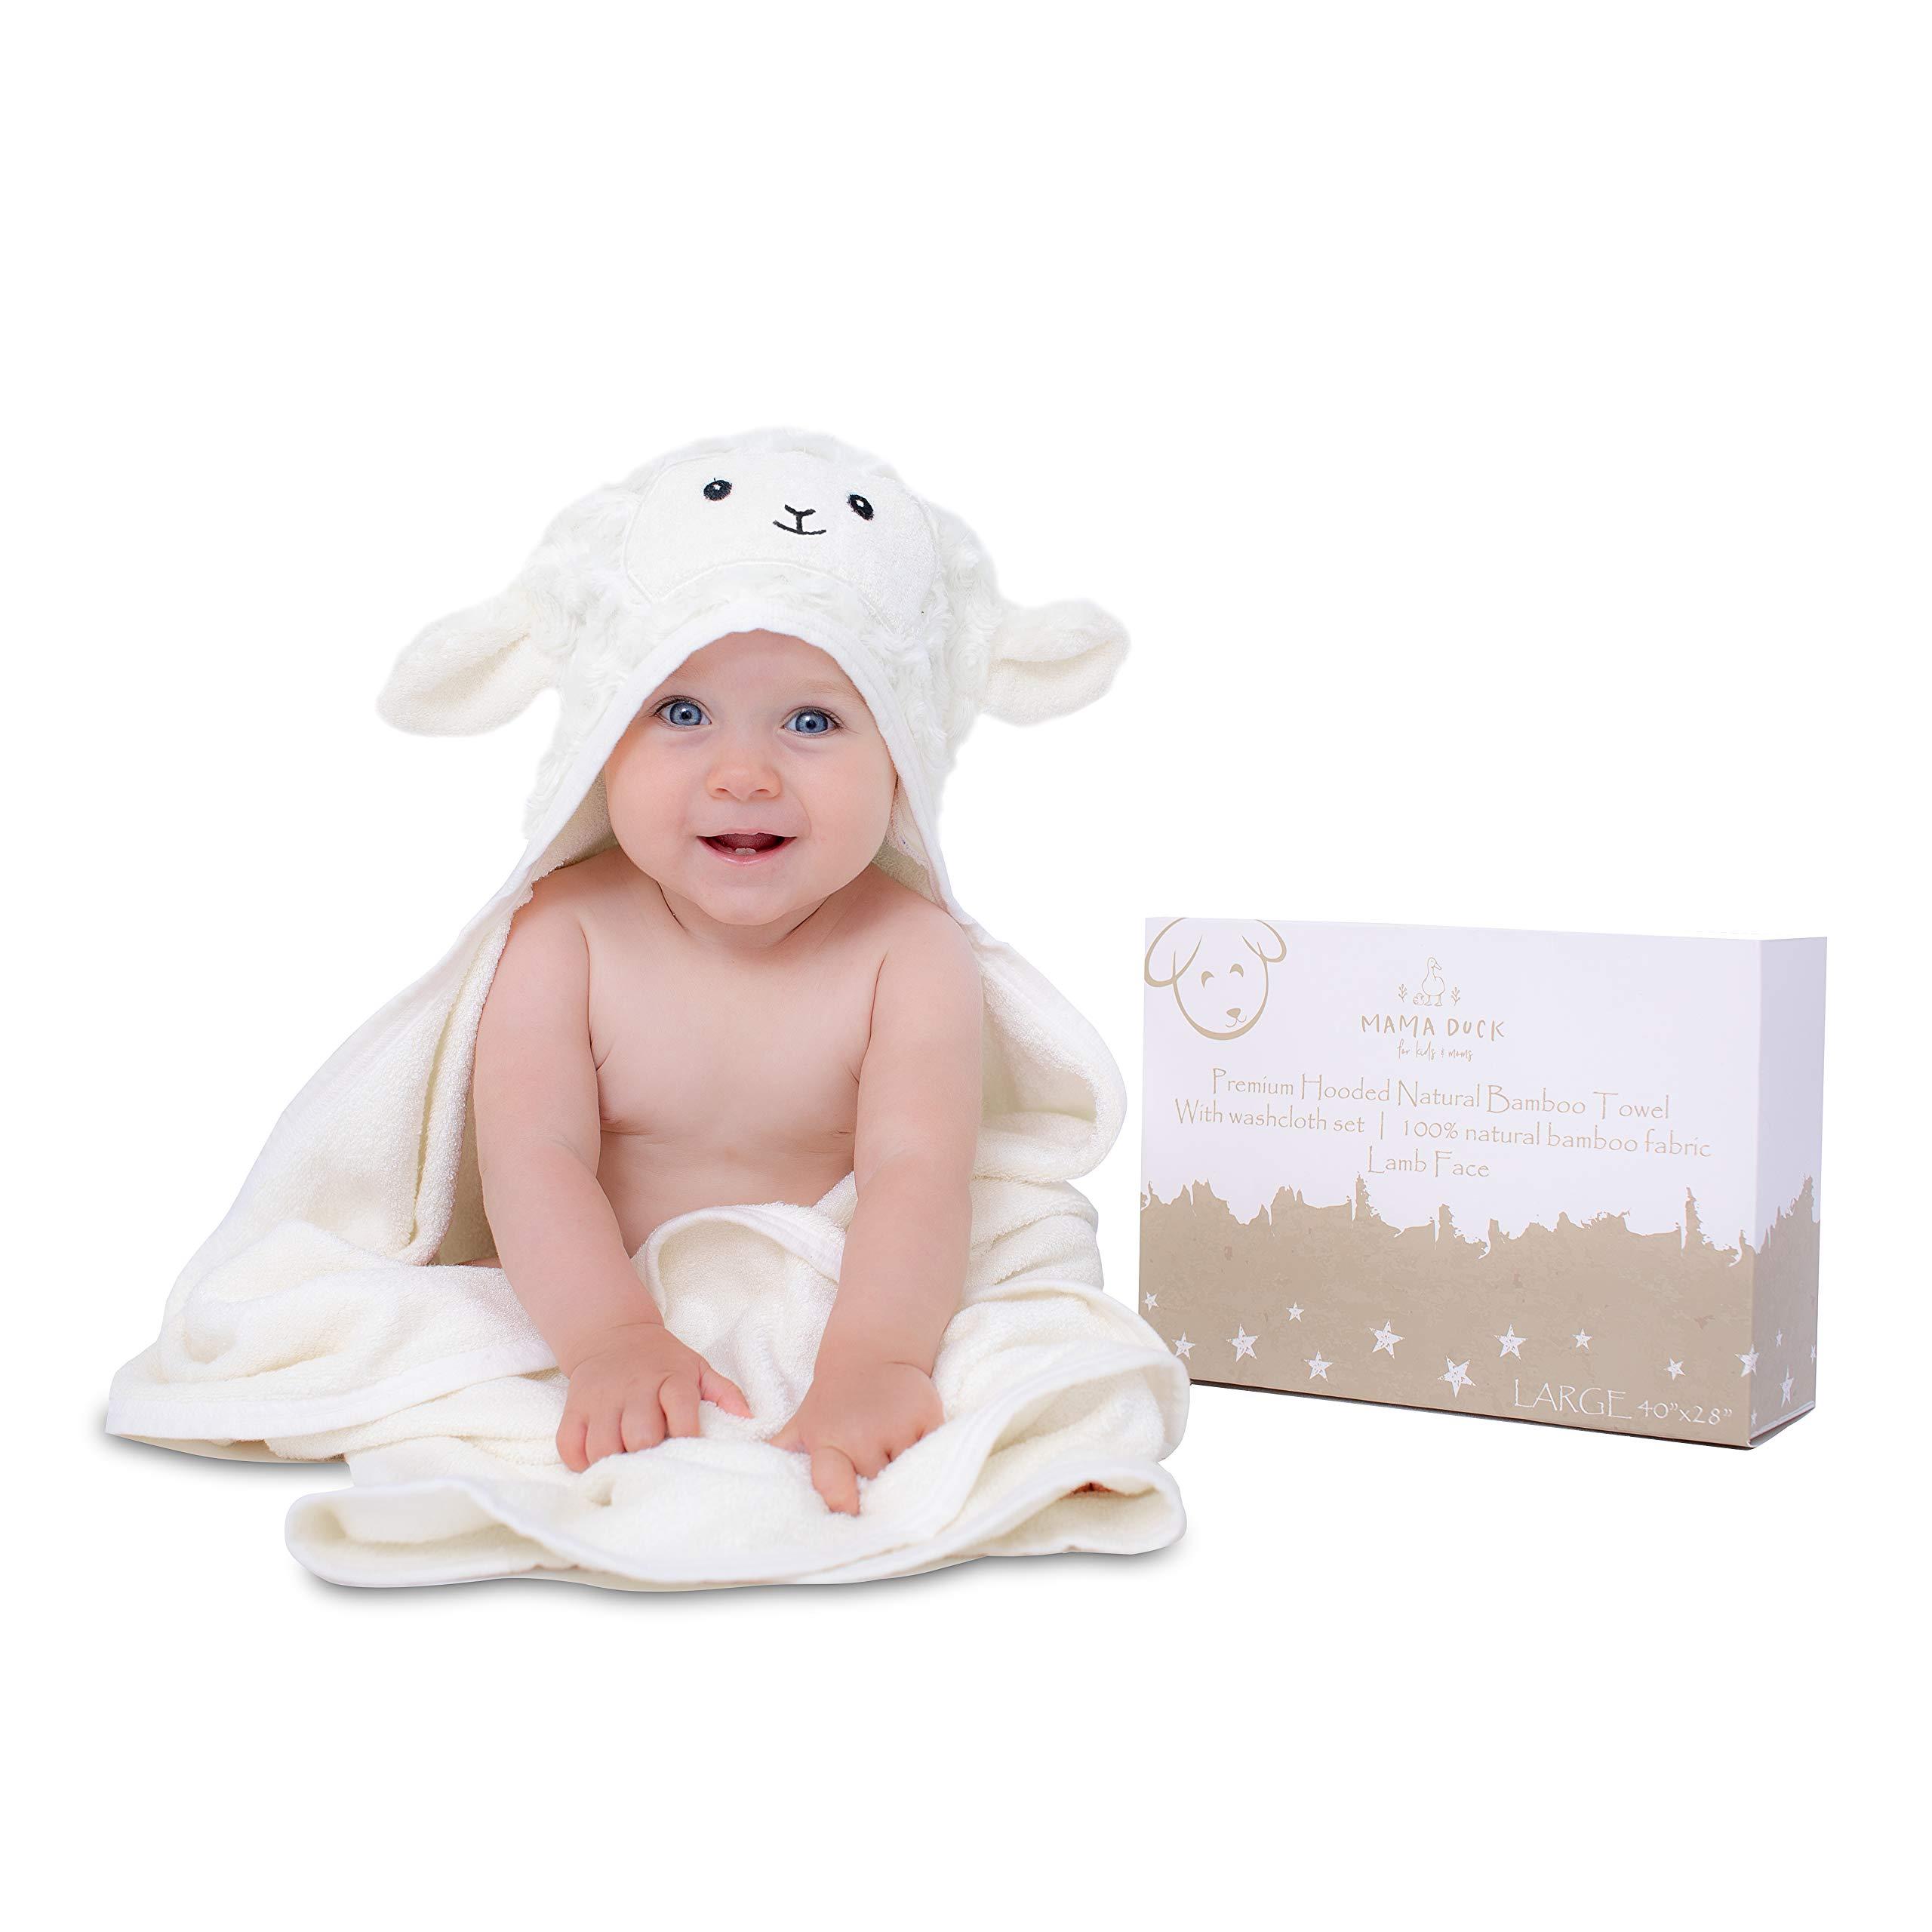 XL 40''X28'' Ultra Soft Rayon from Bamboo Baby Hooded Towel & Washcloth Set   Bamboo Infant Towel   Lamb   Thick, Soft & Ultra Absorbent   Newborn Baby Shower Gift Toddler, Boy & Girl Unisex